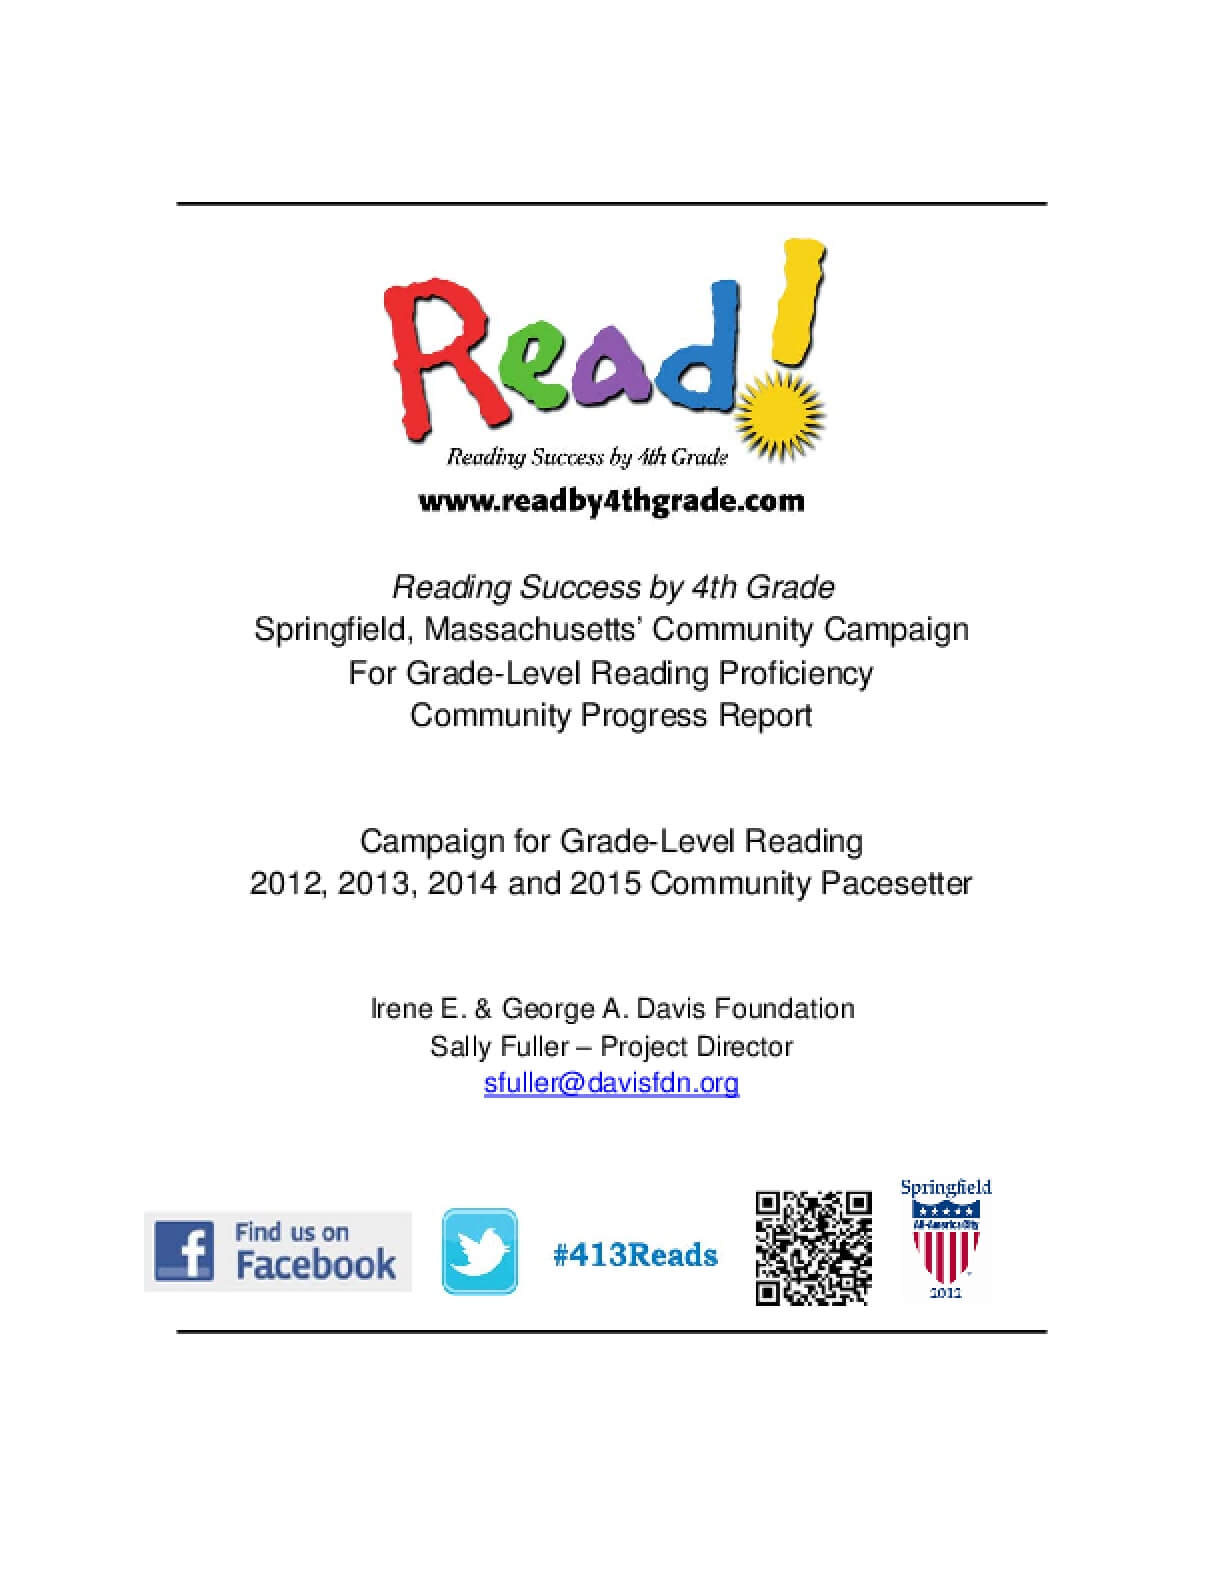 Read! Reading Success by 4th Grade: Community Progress Report